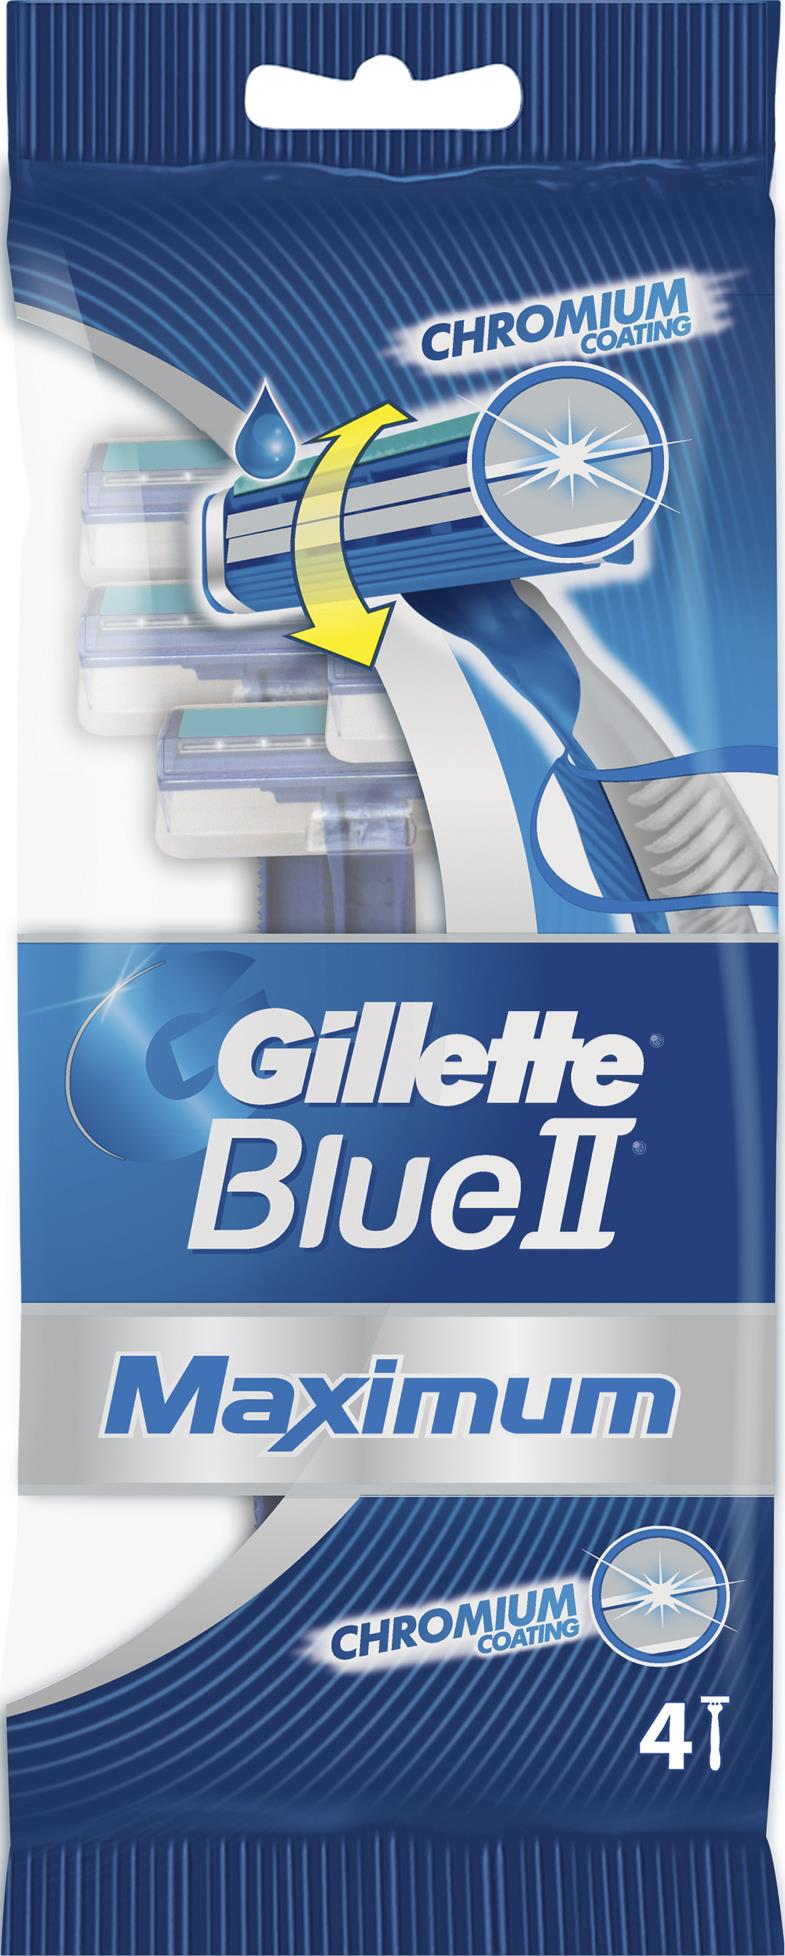 Станки Gillette Blue II Maximum бритвенные одноразовые